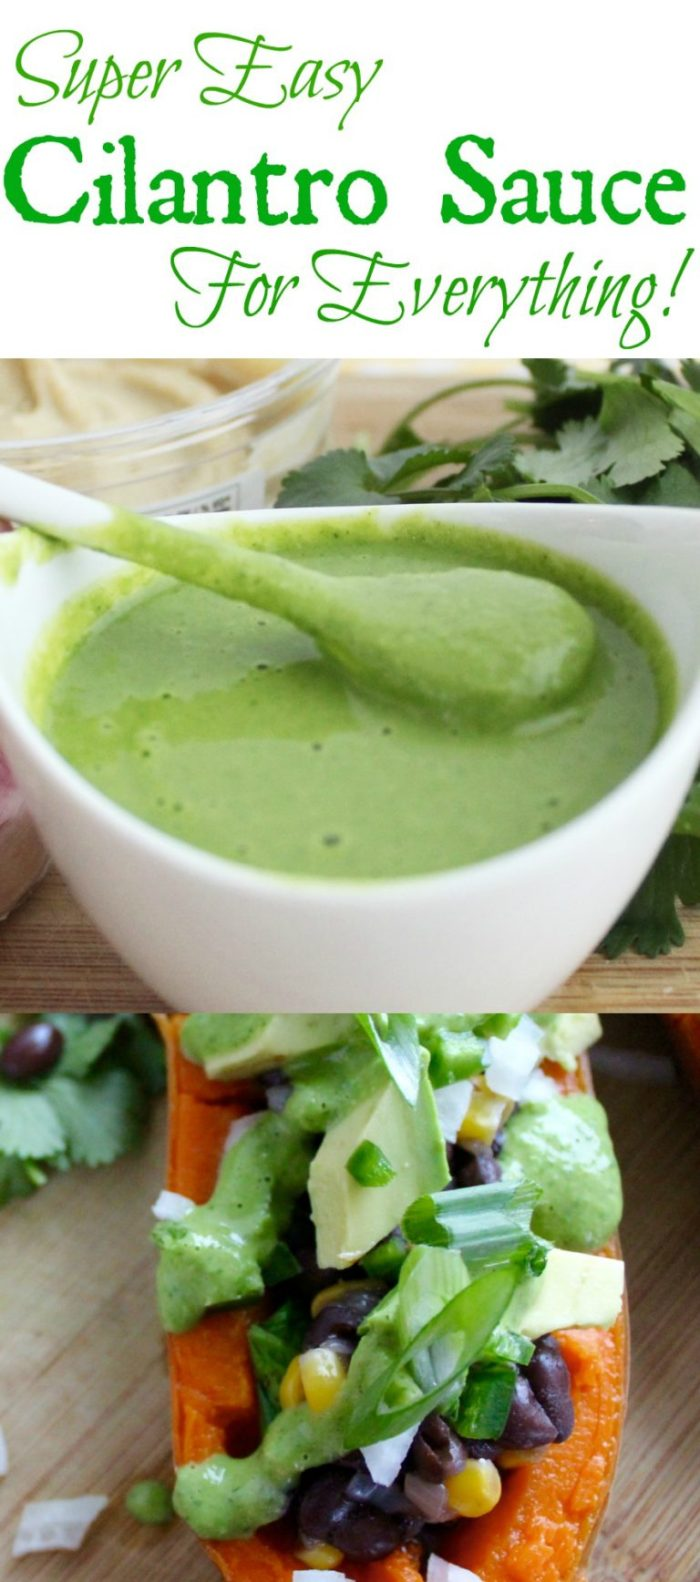 Super Easy Cilantro Sauce that goes with everything! Tacos, wraps, dipping and more!